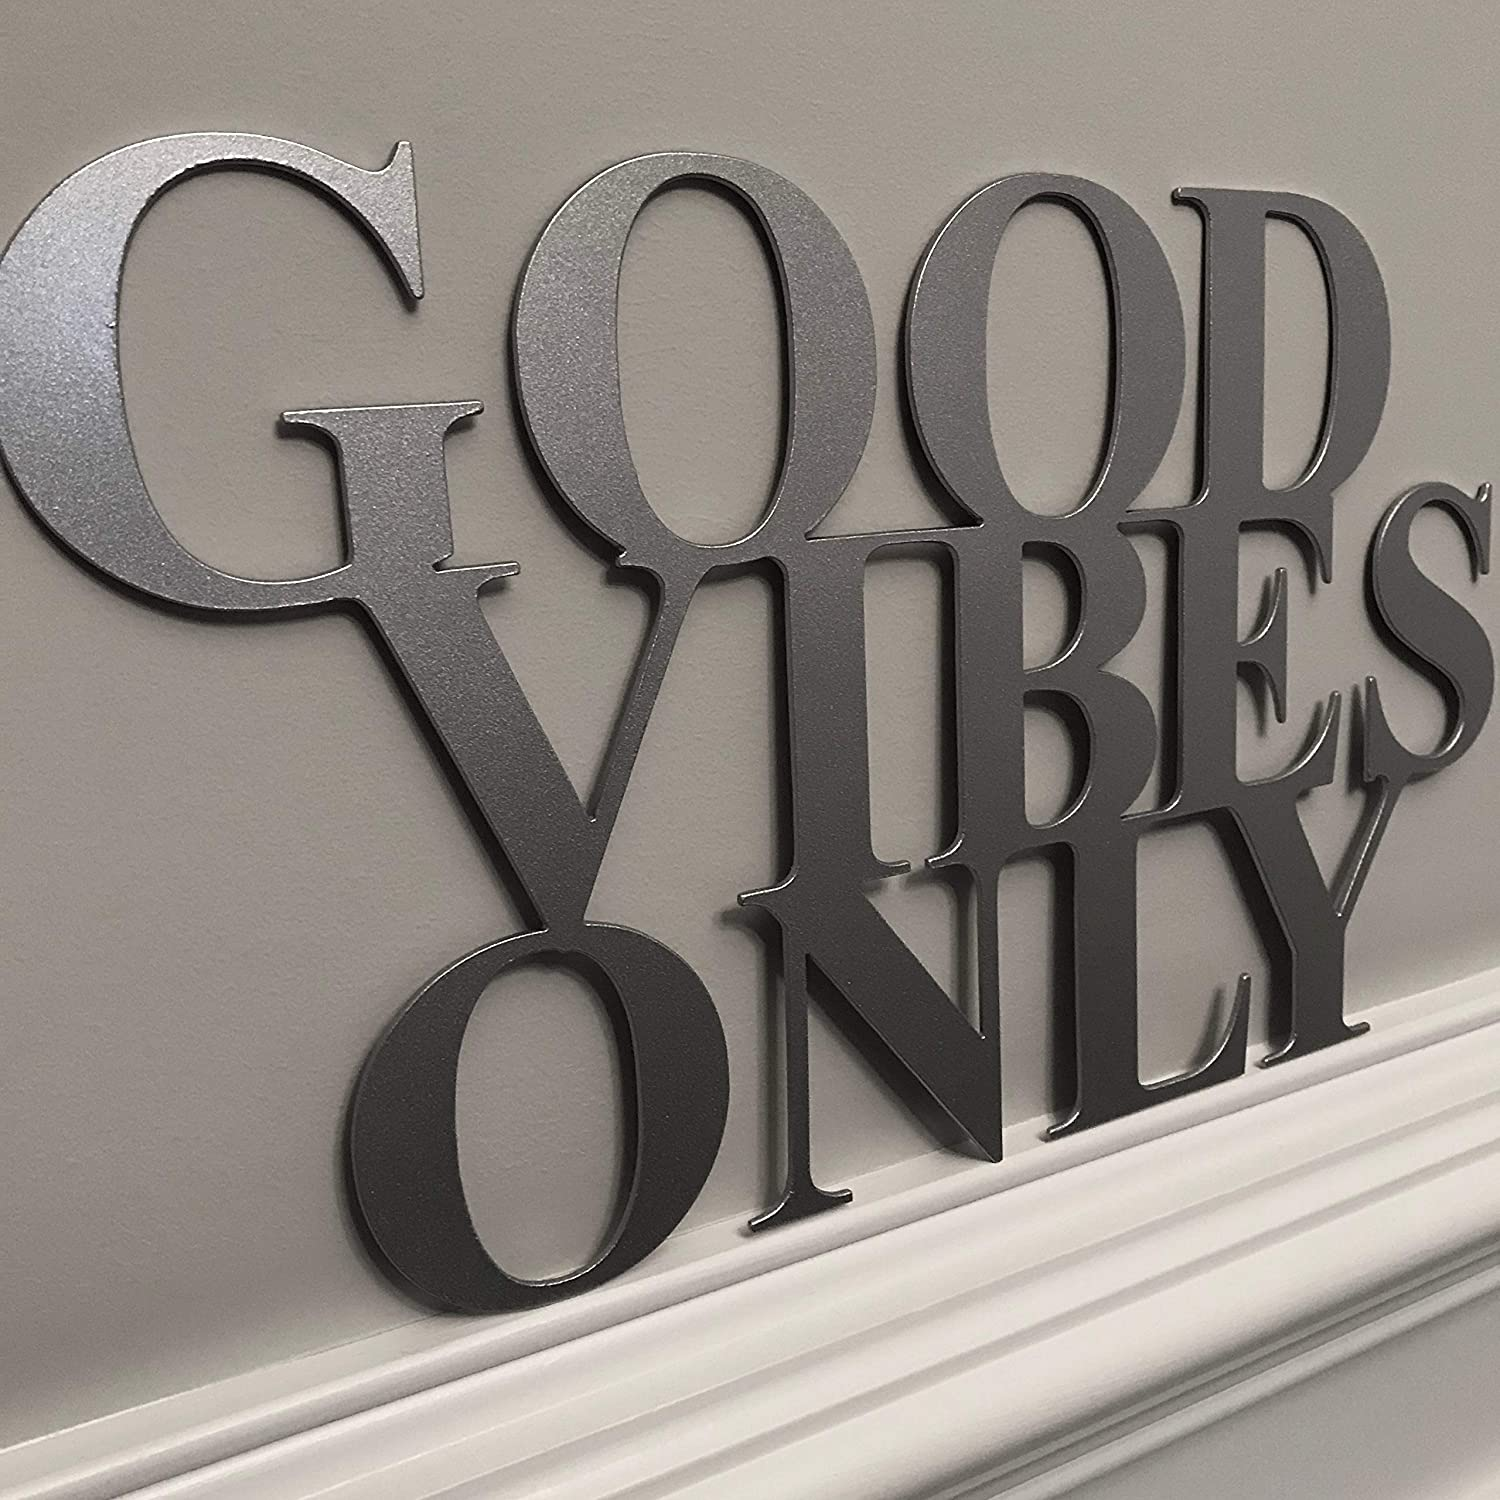 Epic Designs Metal Good Vibes only Second Design Plasma Cut Sign Script for Door Wall Bathroom Decoration (Black)